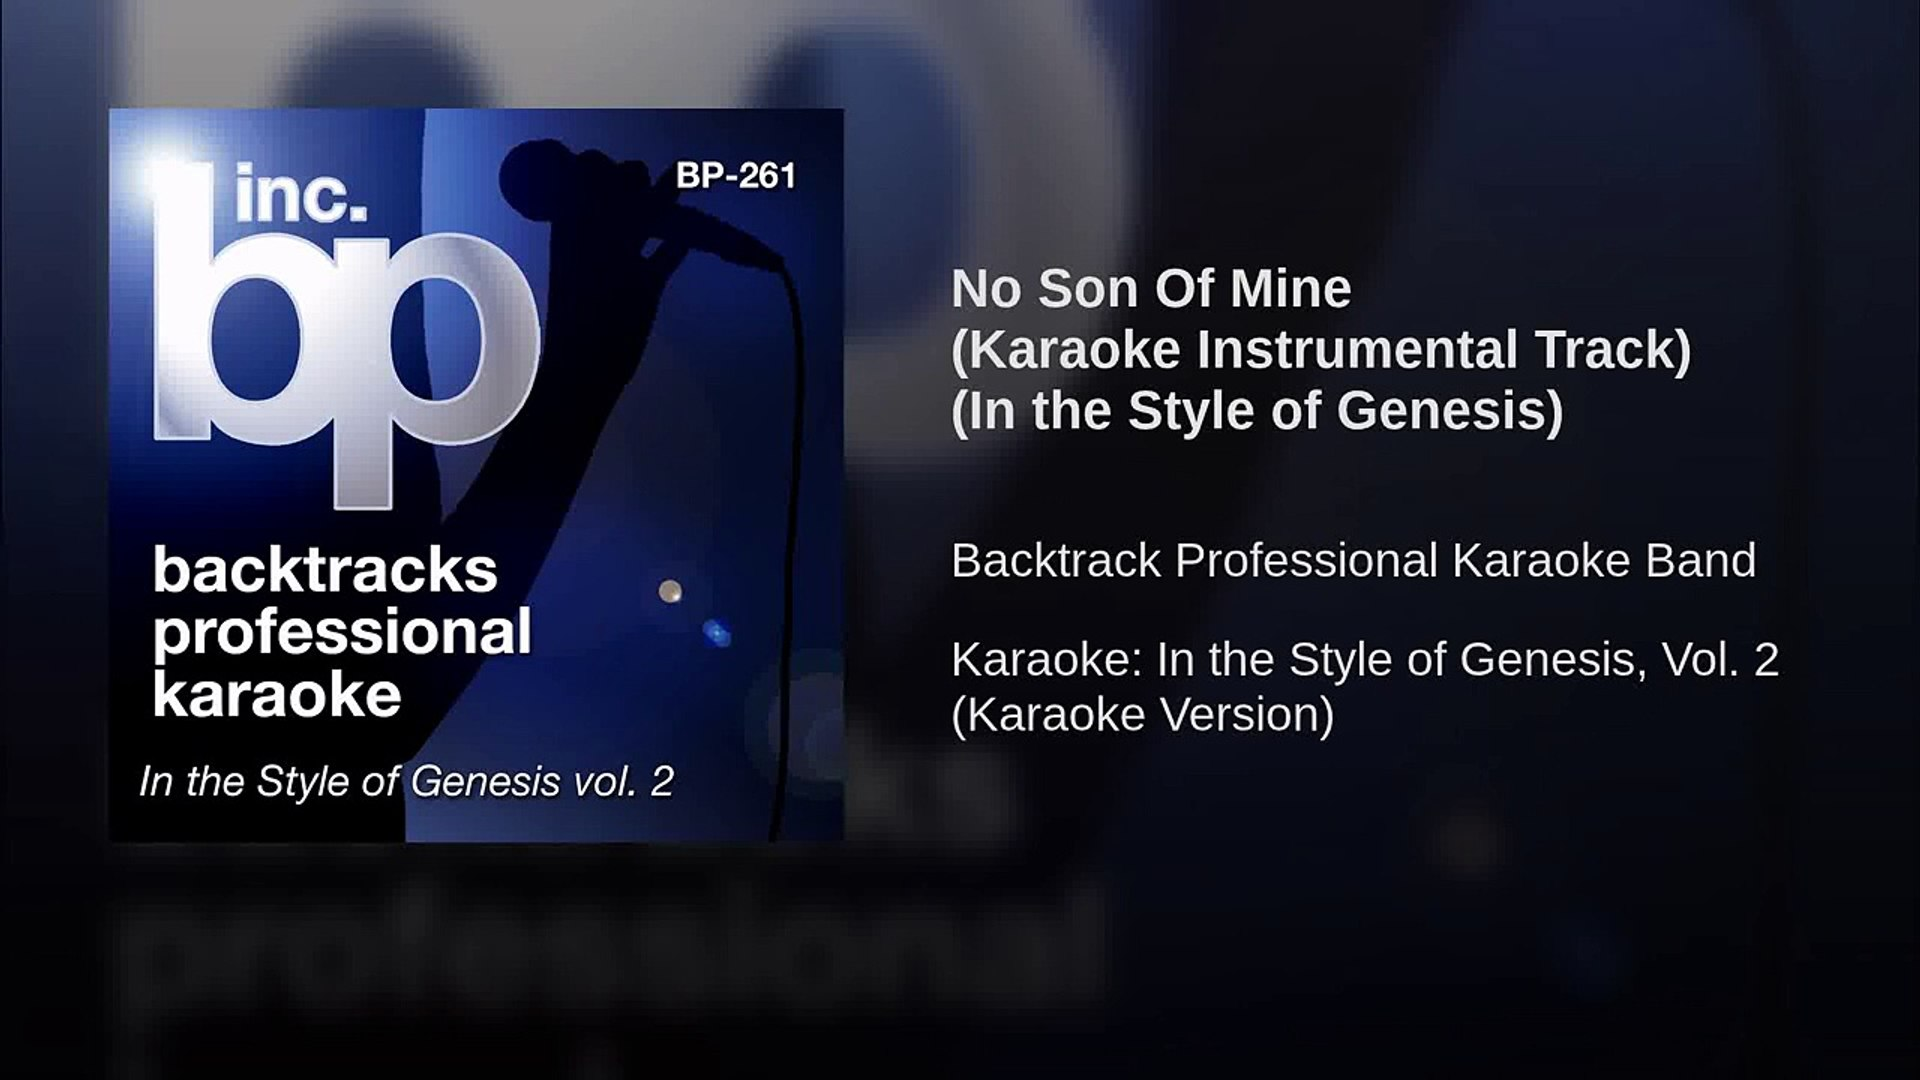 No Son Of Mine (Karaoke Instrumental Track) (In the Style of Genesis)